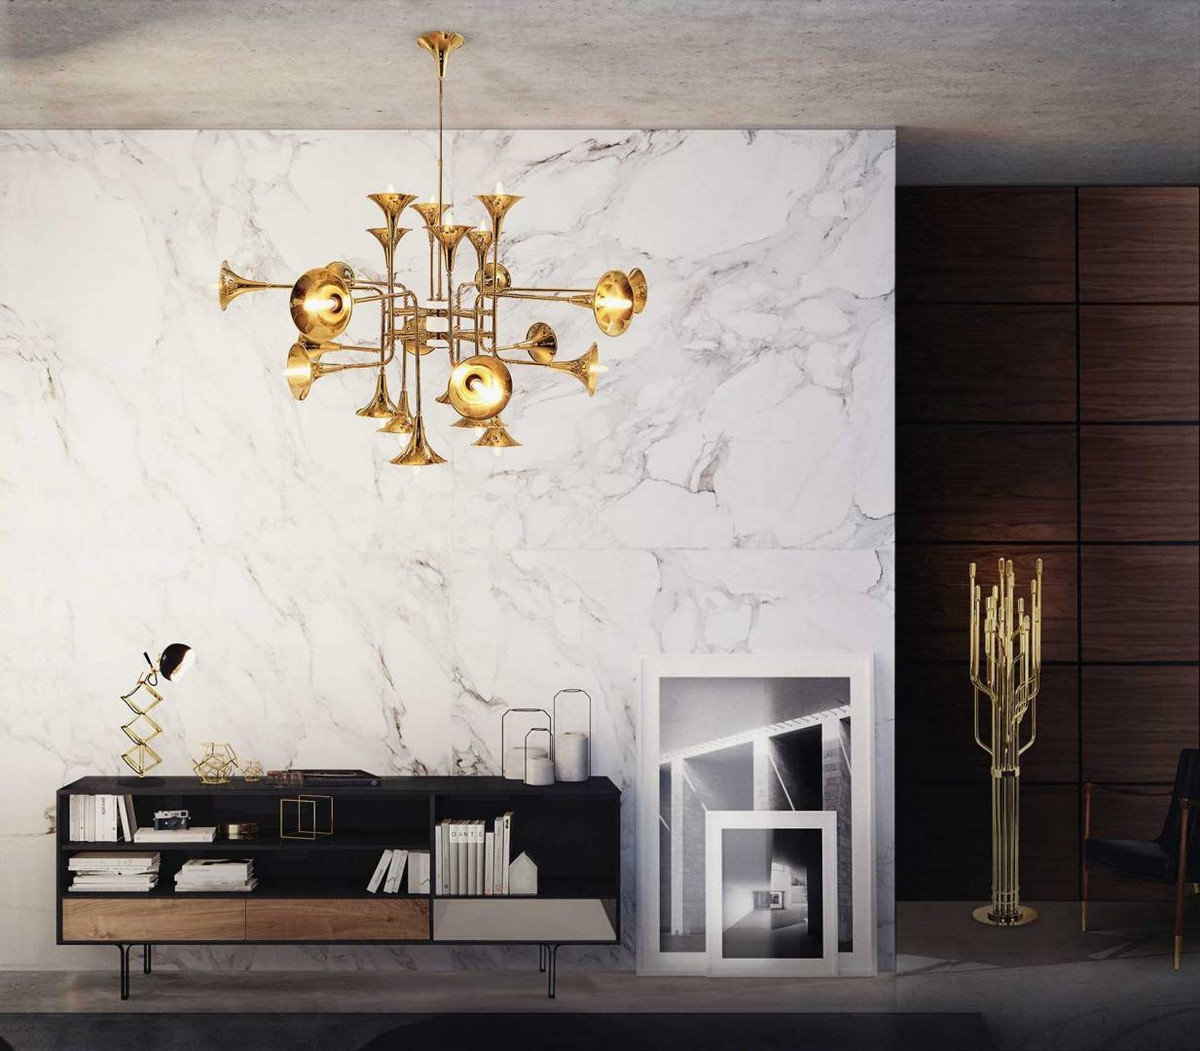 Exclusive Lighting Designs You Will Love exclusive lighting designs Exclusive Lighting Designs You Will Love botti suspension lamp2